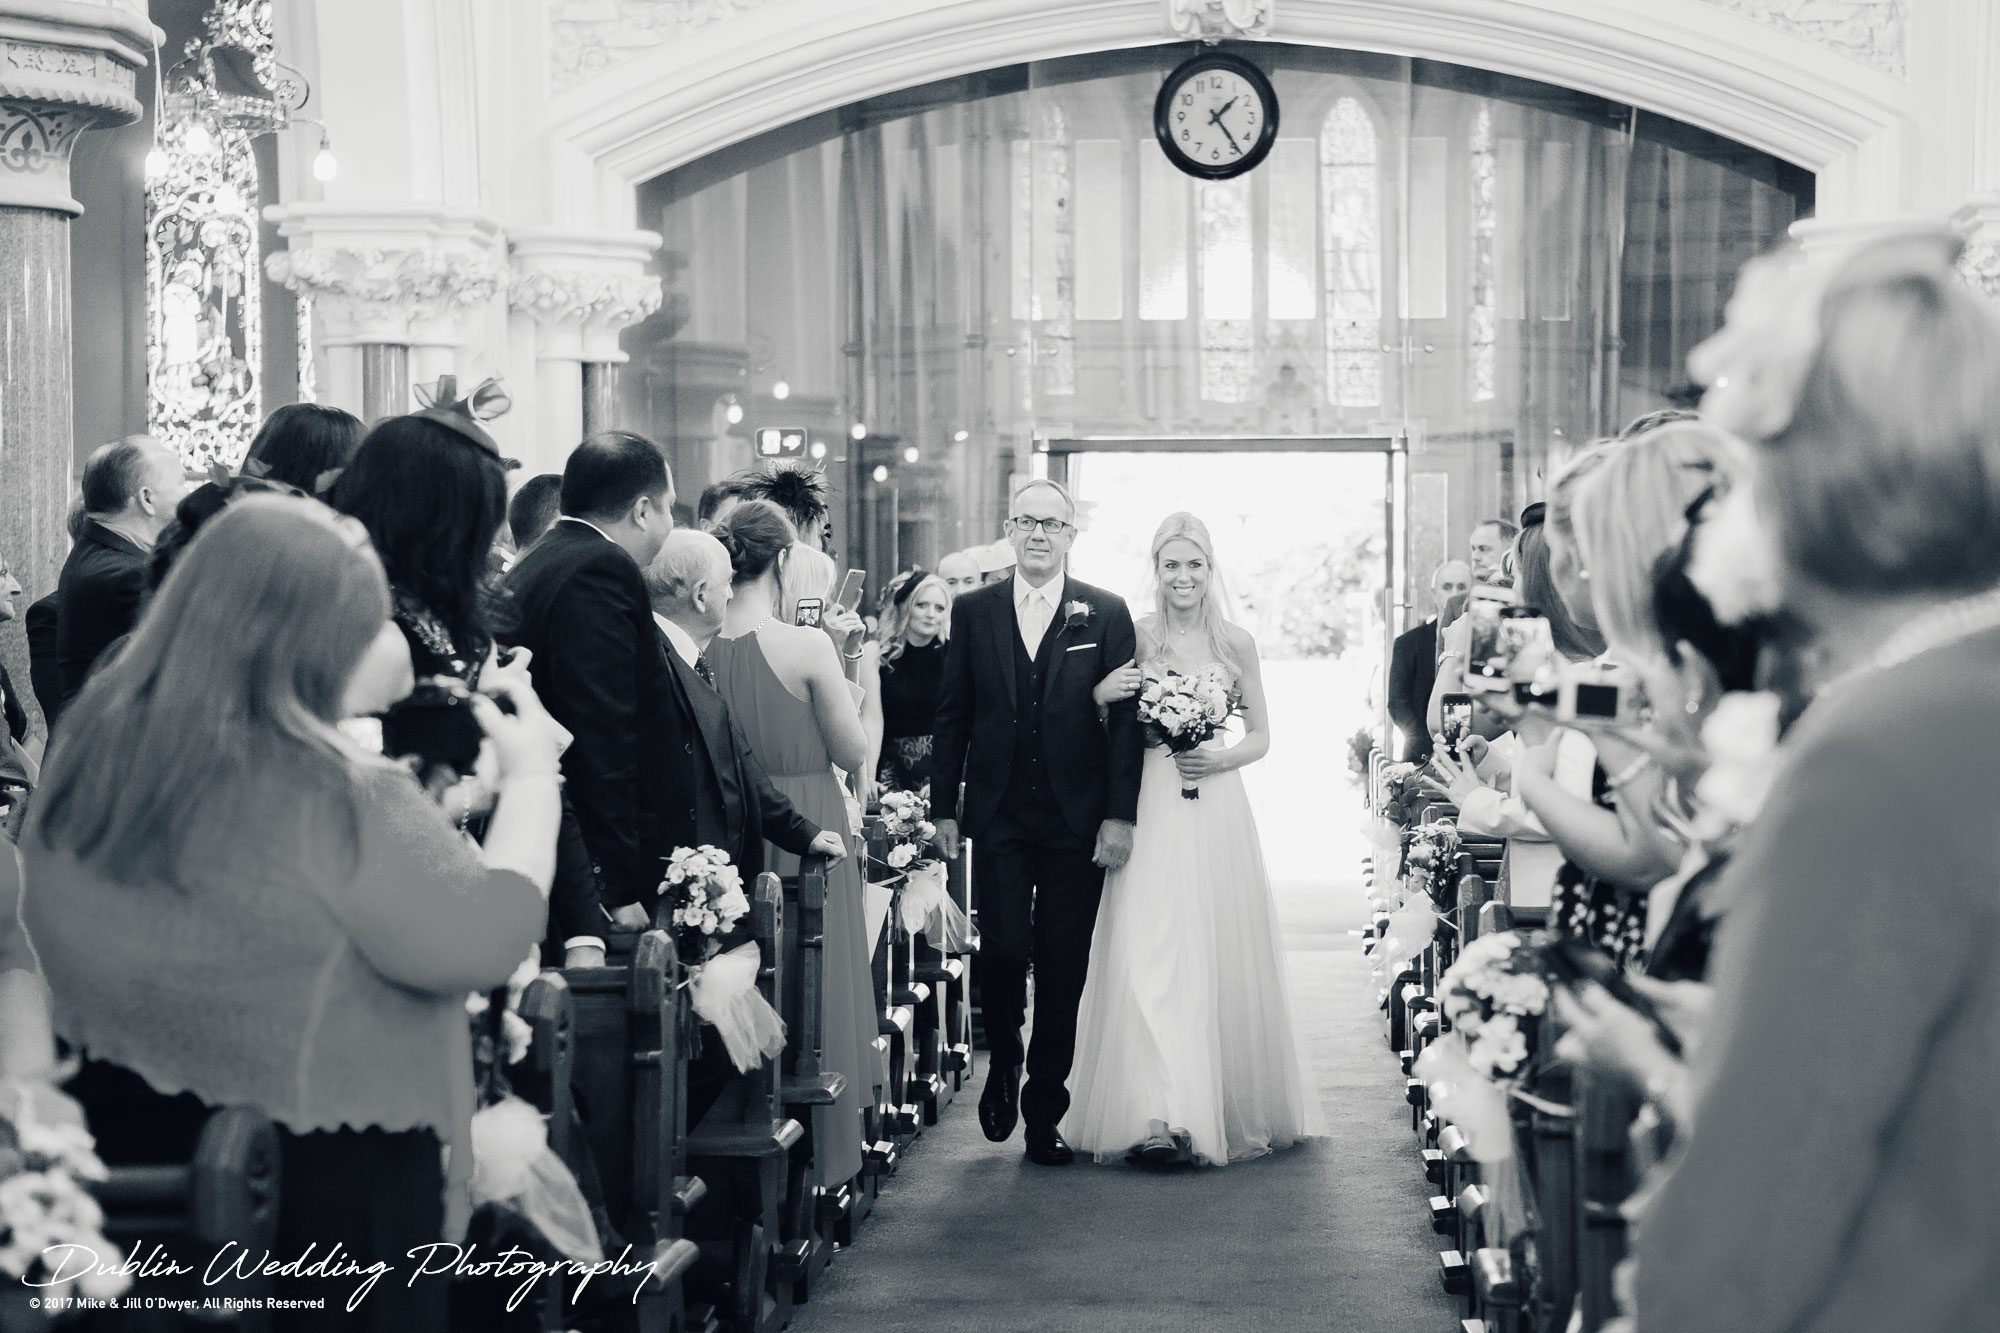 K Club, Kildare, Wedding Photographer, Dublin, Bride approaching the Groom with father